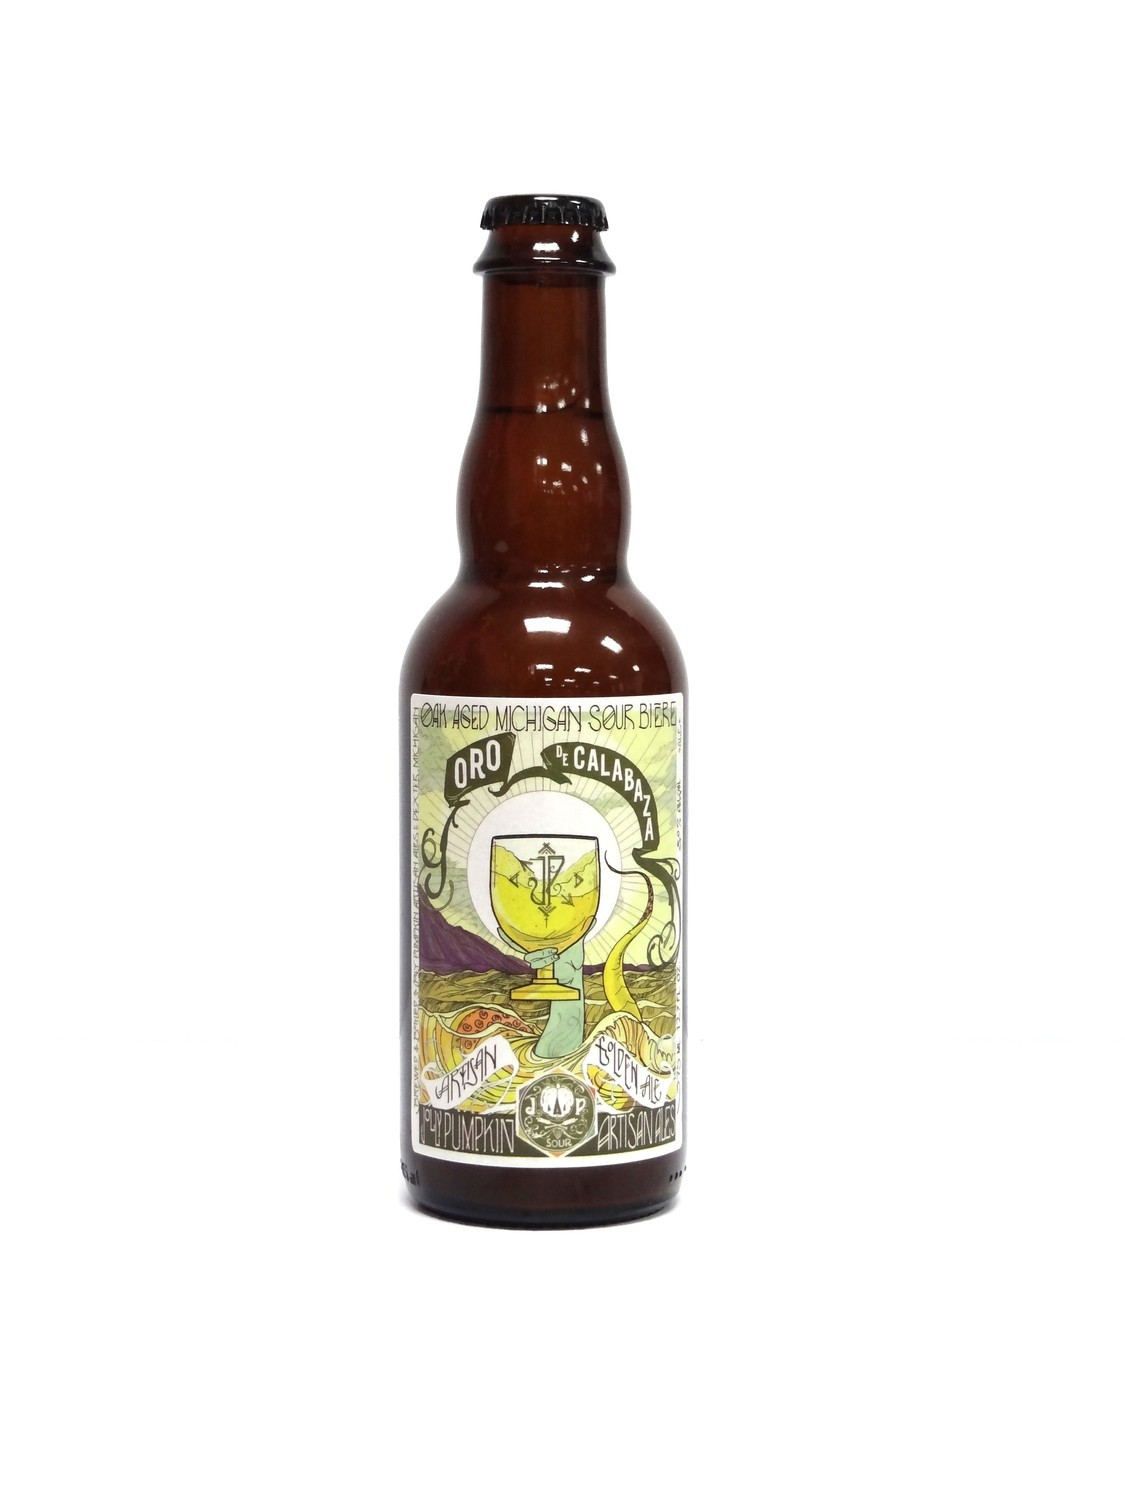 Oro De Calabaza Oak Aged Sour Biere By Jolly Pumpkin from Dexter, MI 12.7oz Single Bottle (F1-5)2